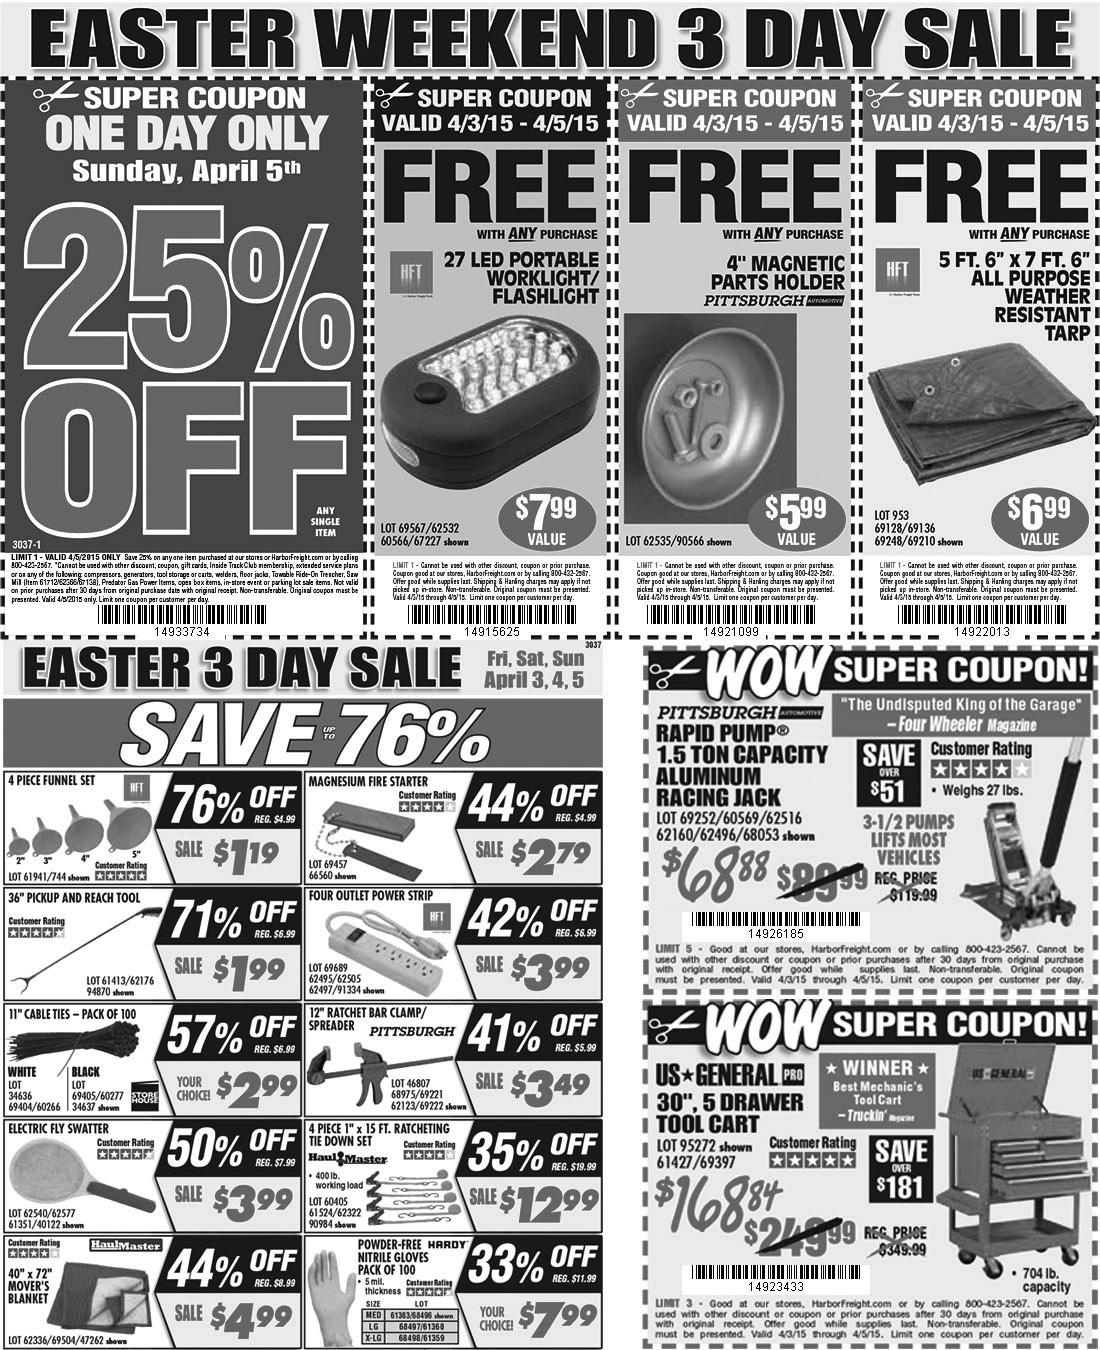 Harbor Freight Coupon May 2017 25% off a single item & more at Harbor Freight Tools, or online via promo code 14933734